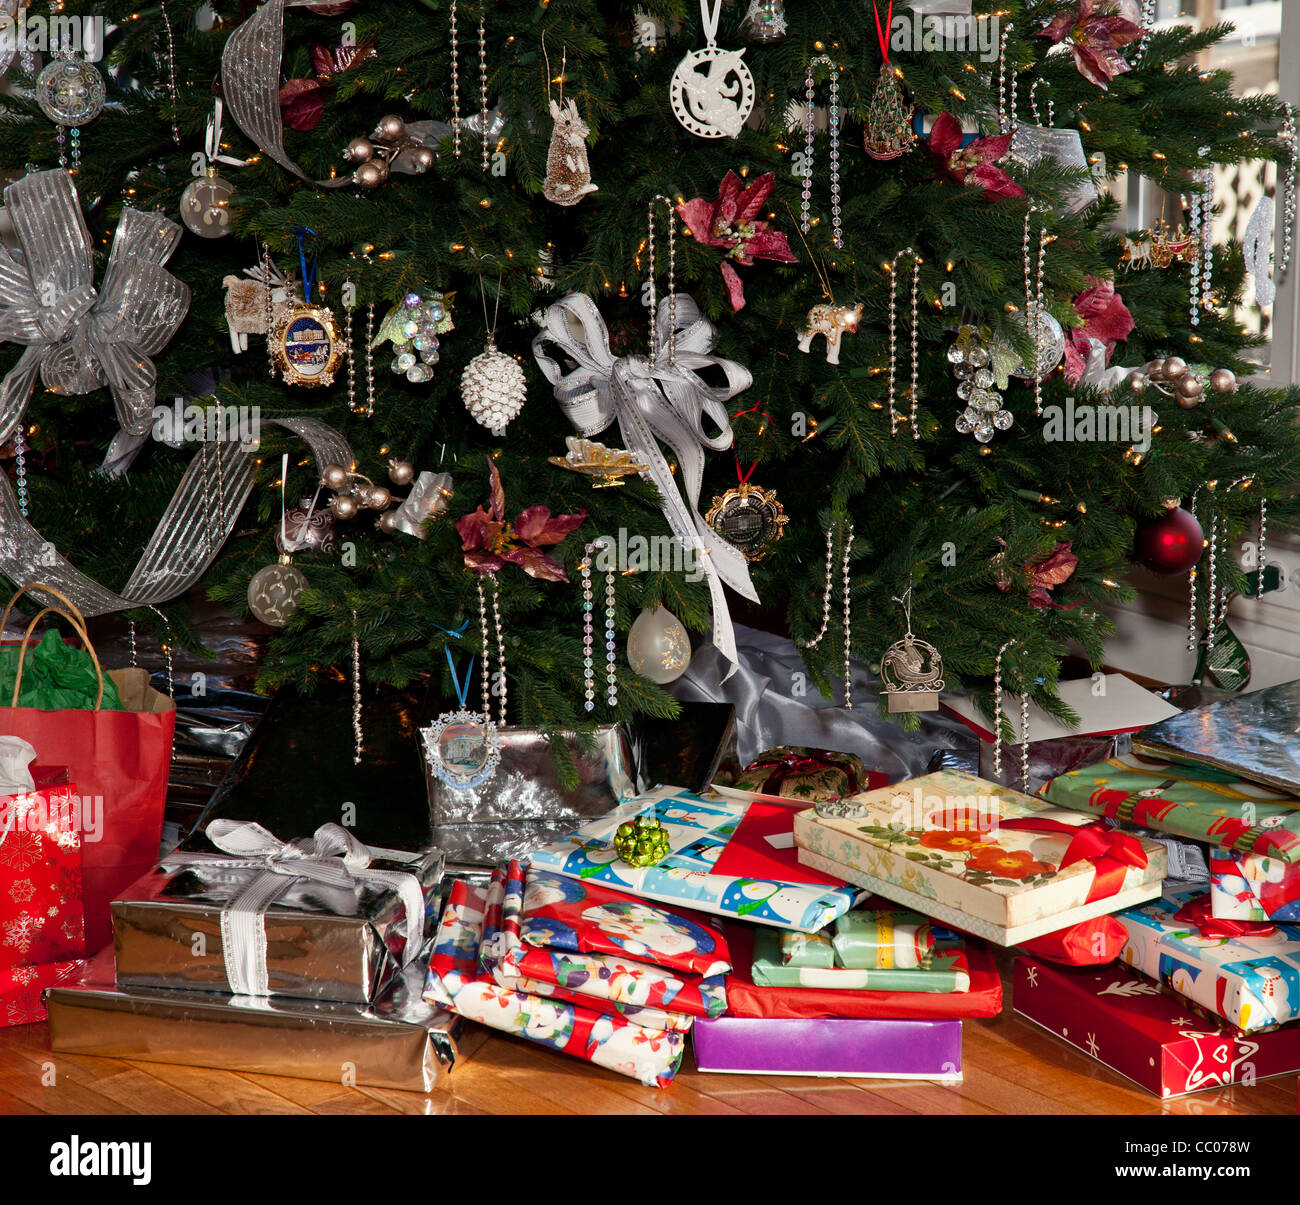 Christmas Tree Decorated With Silver And White Ribbons And Ornaments Stock Photo Alamy